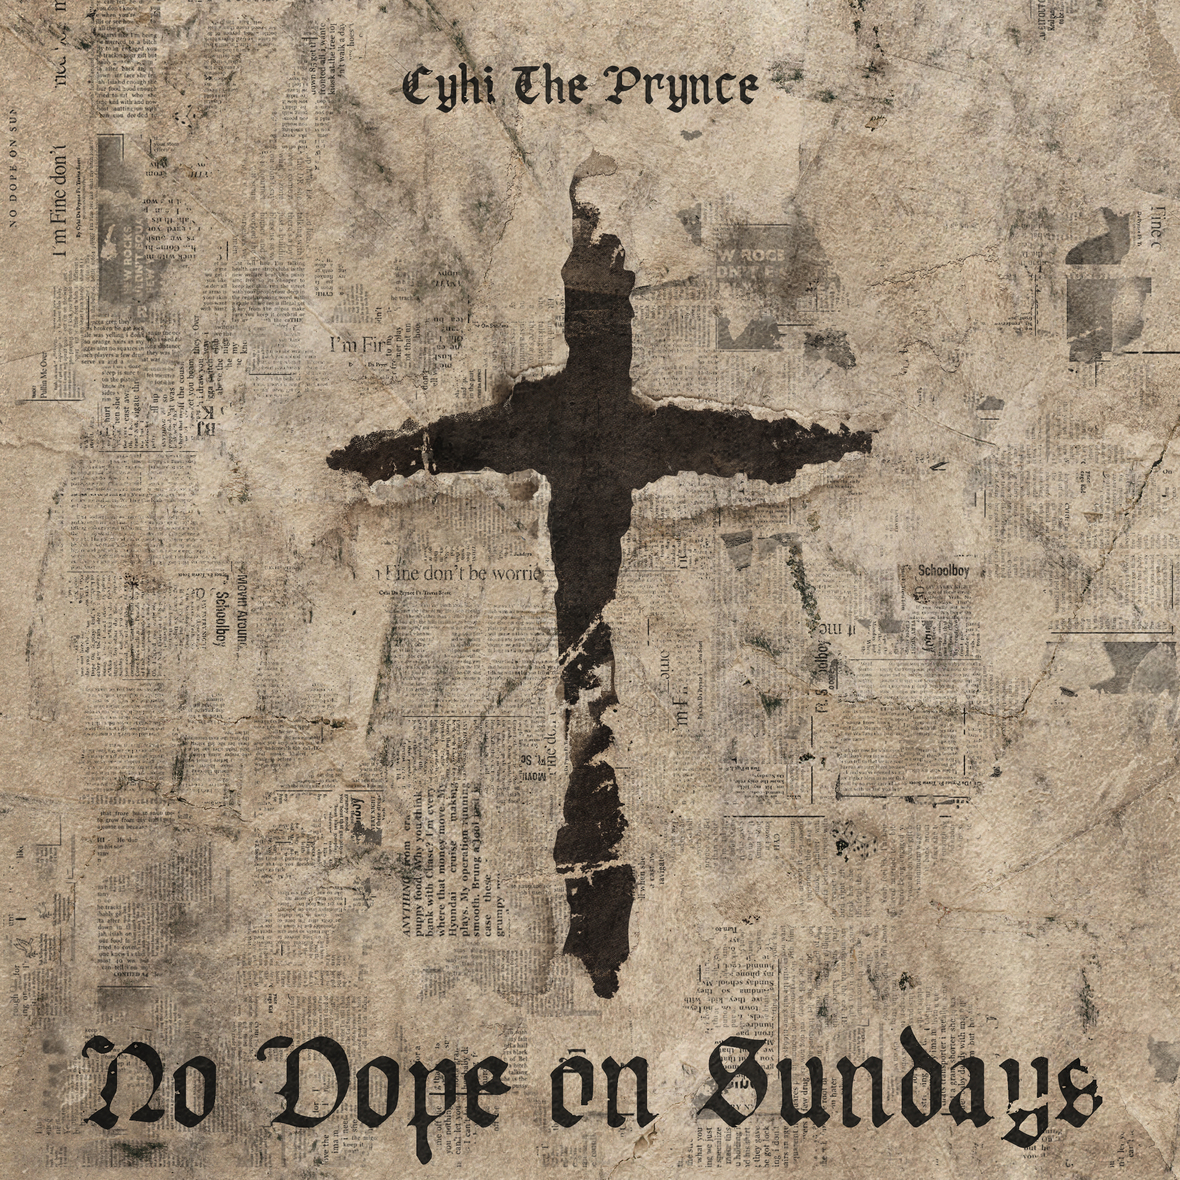 Pre-Order CyHi The Prynce's Debut Album, No Dope On Sundays, Out 11/17!